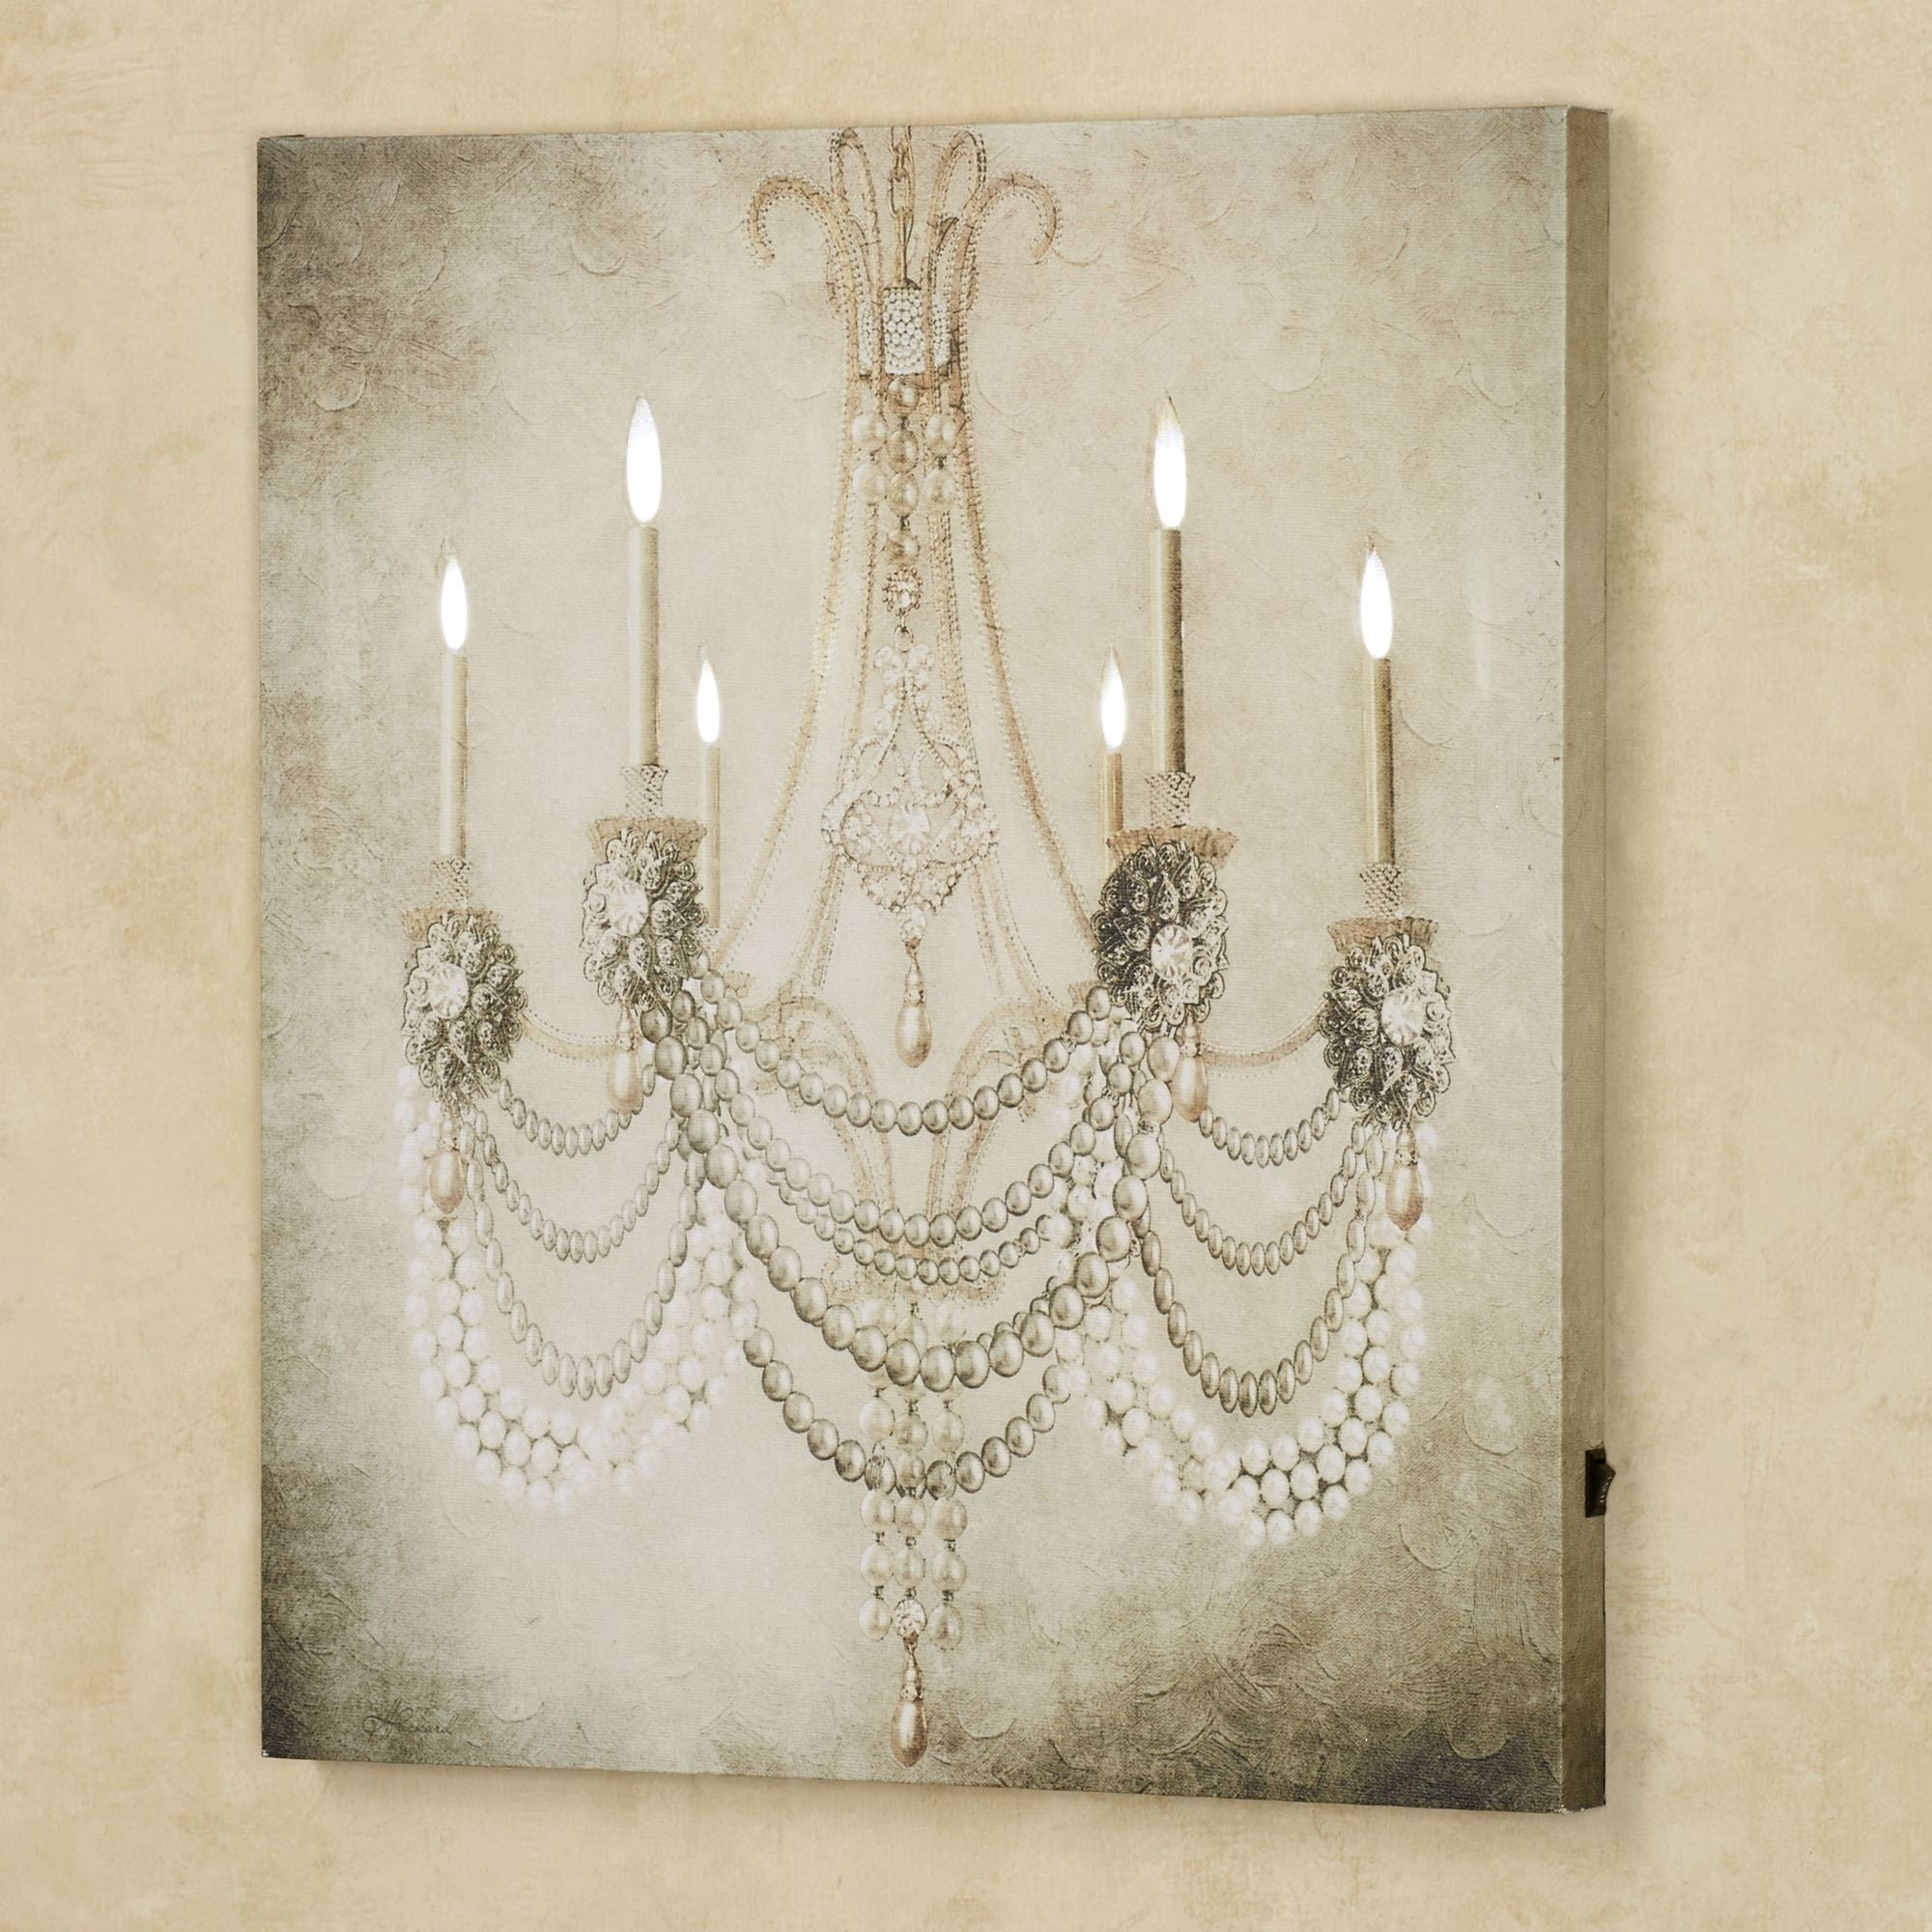 Vintage Chandelier Led Lighted Canvas Art Within Most Recently Released Chandelier Canvas Wall Art (Gallery 1 of 15)